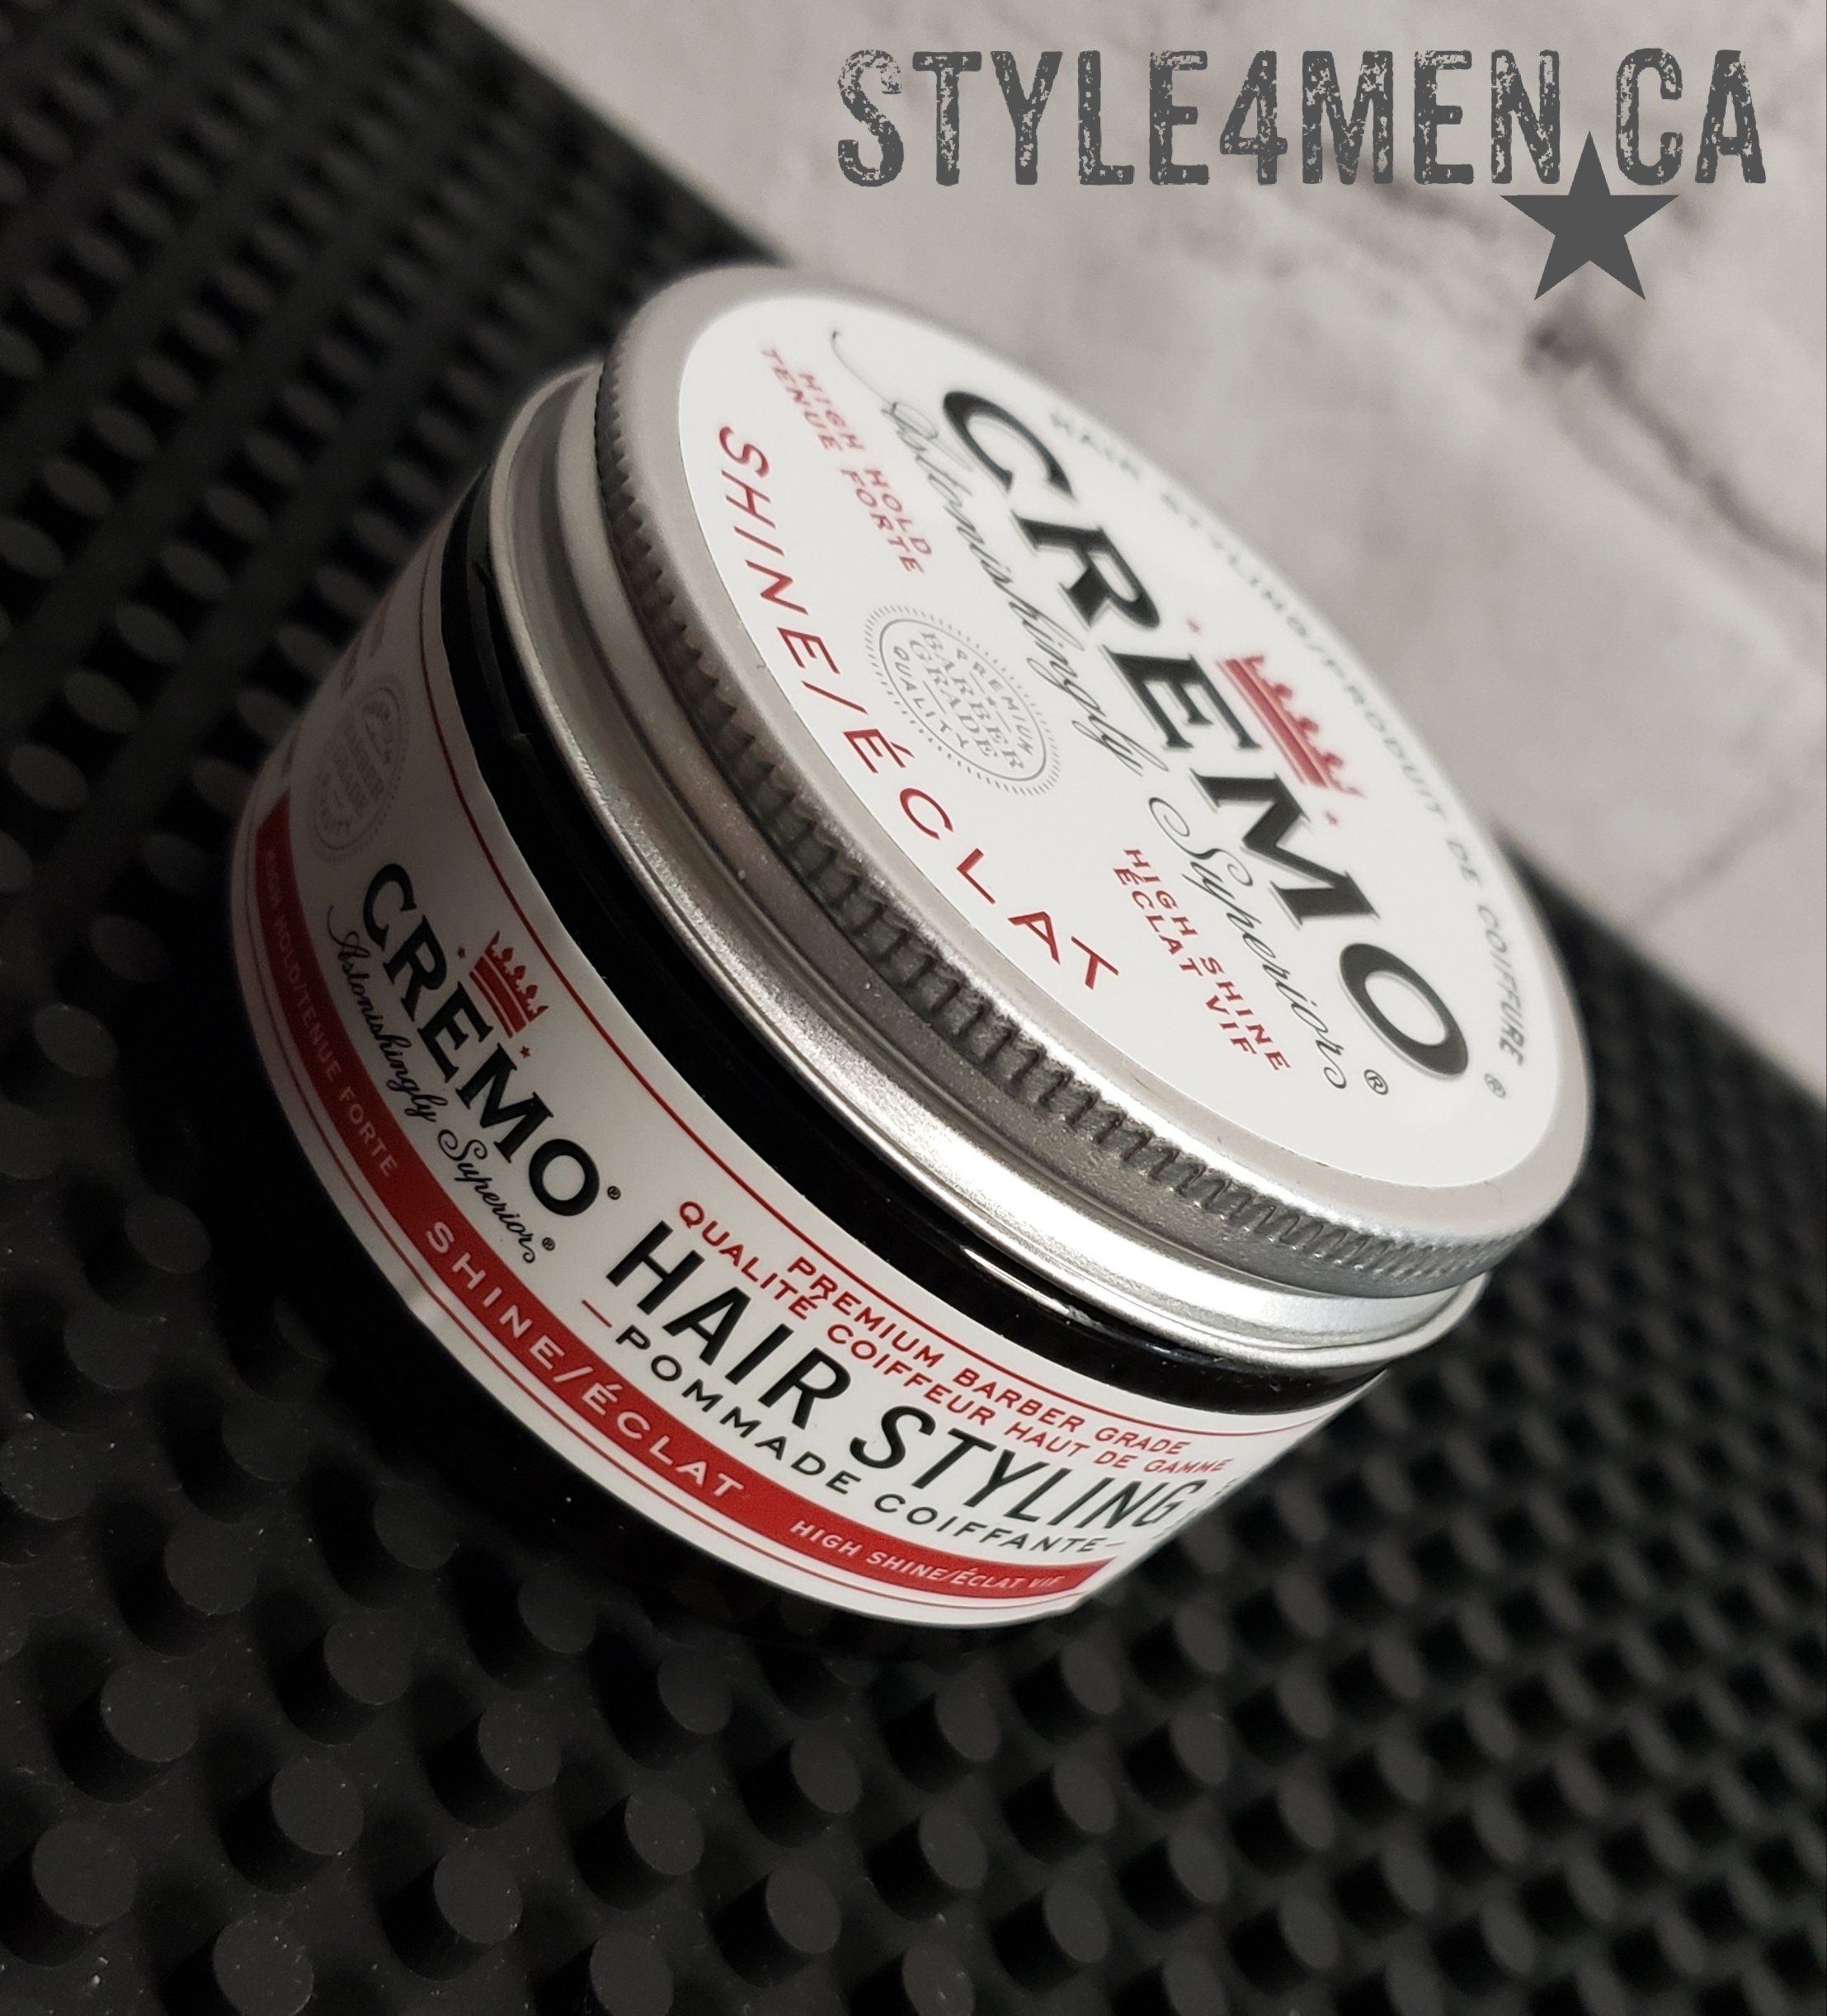 CREMO's Hair Styling Pomade